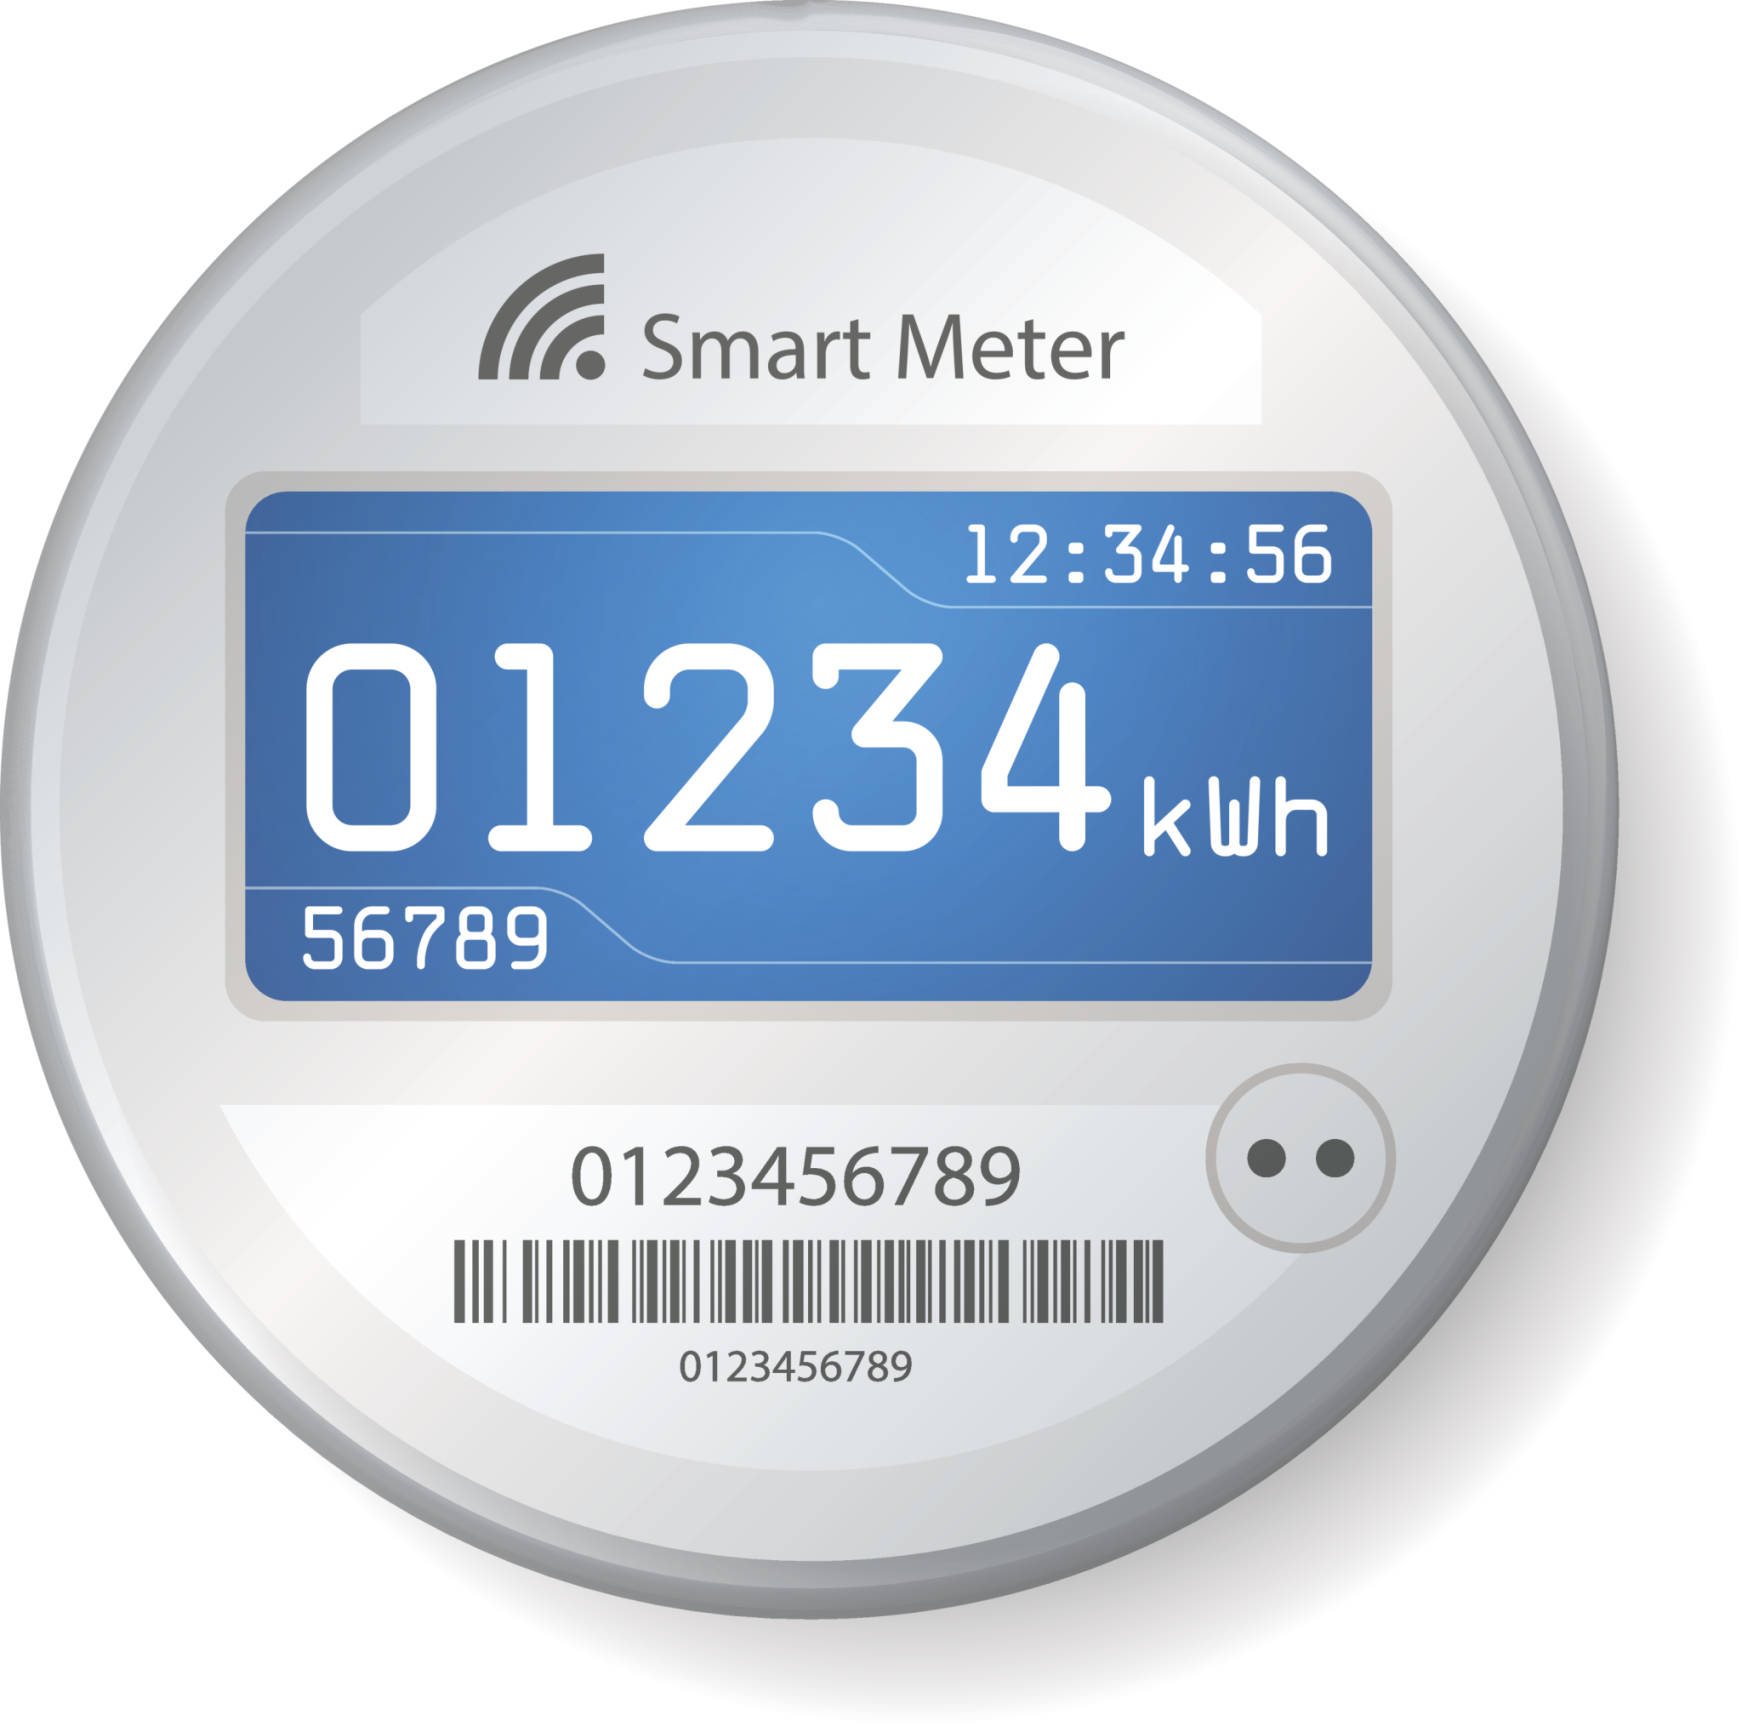 Smart Electric Meter Reading : Smart meter risks in global rollout continues